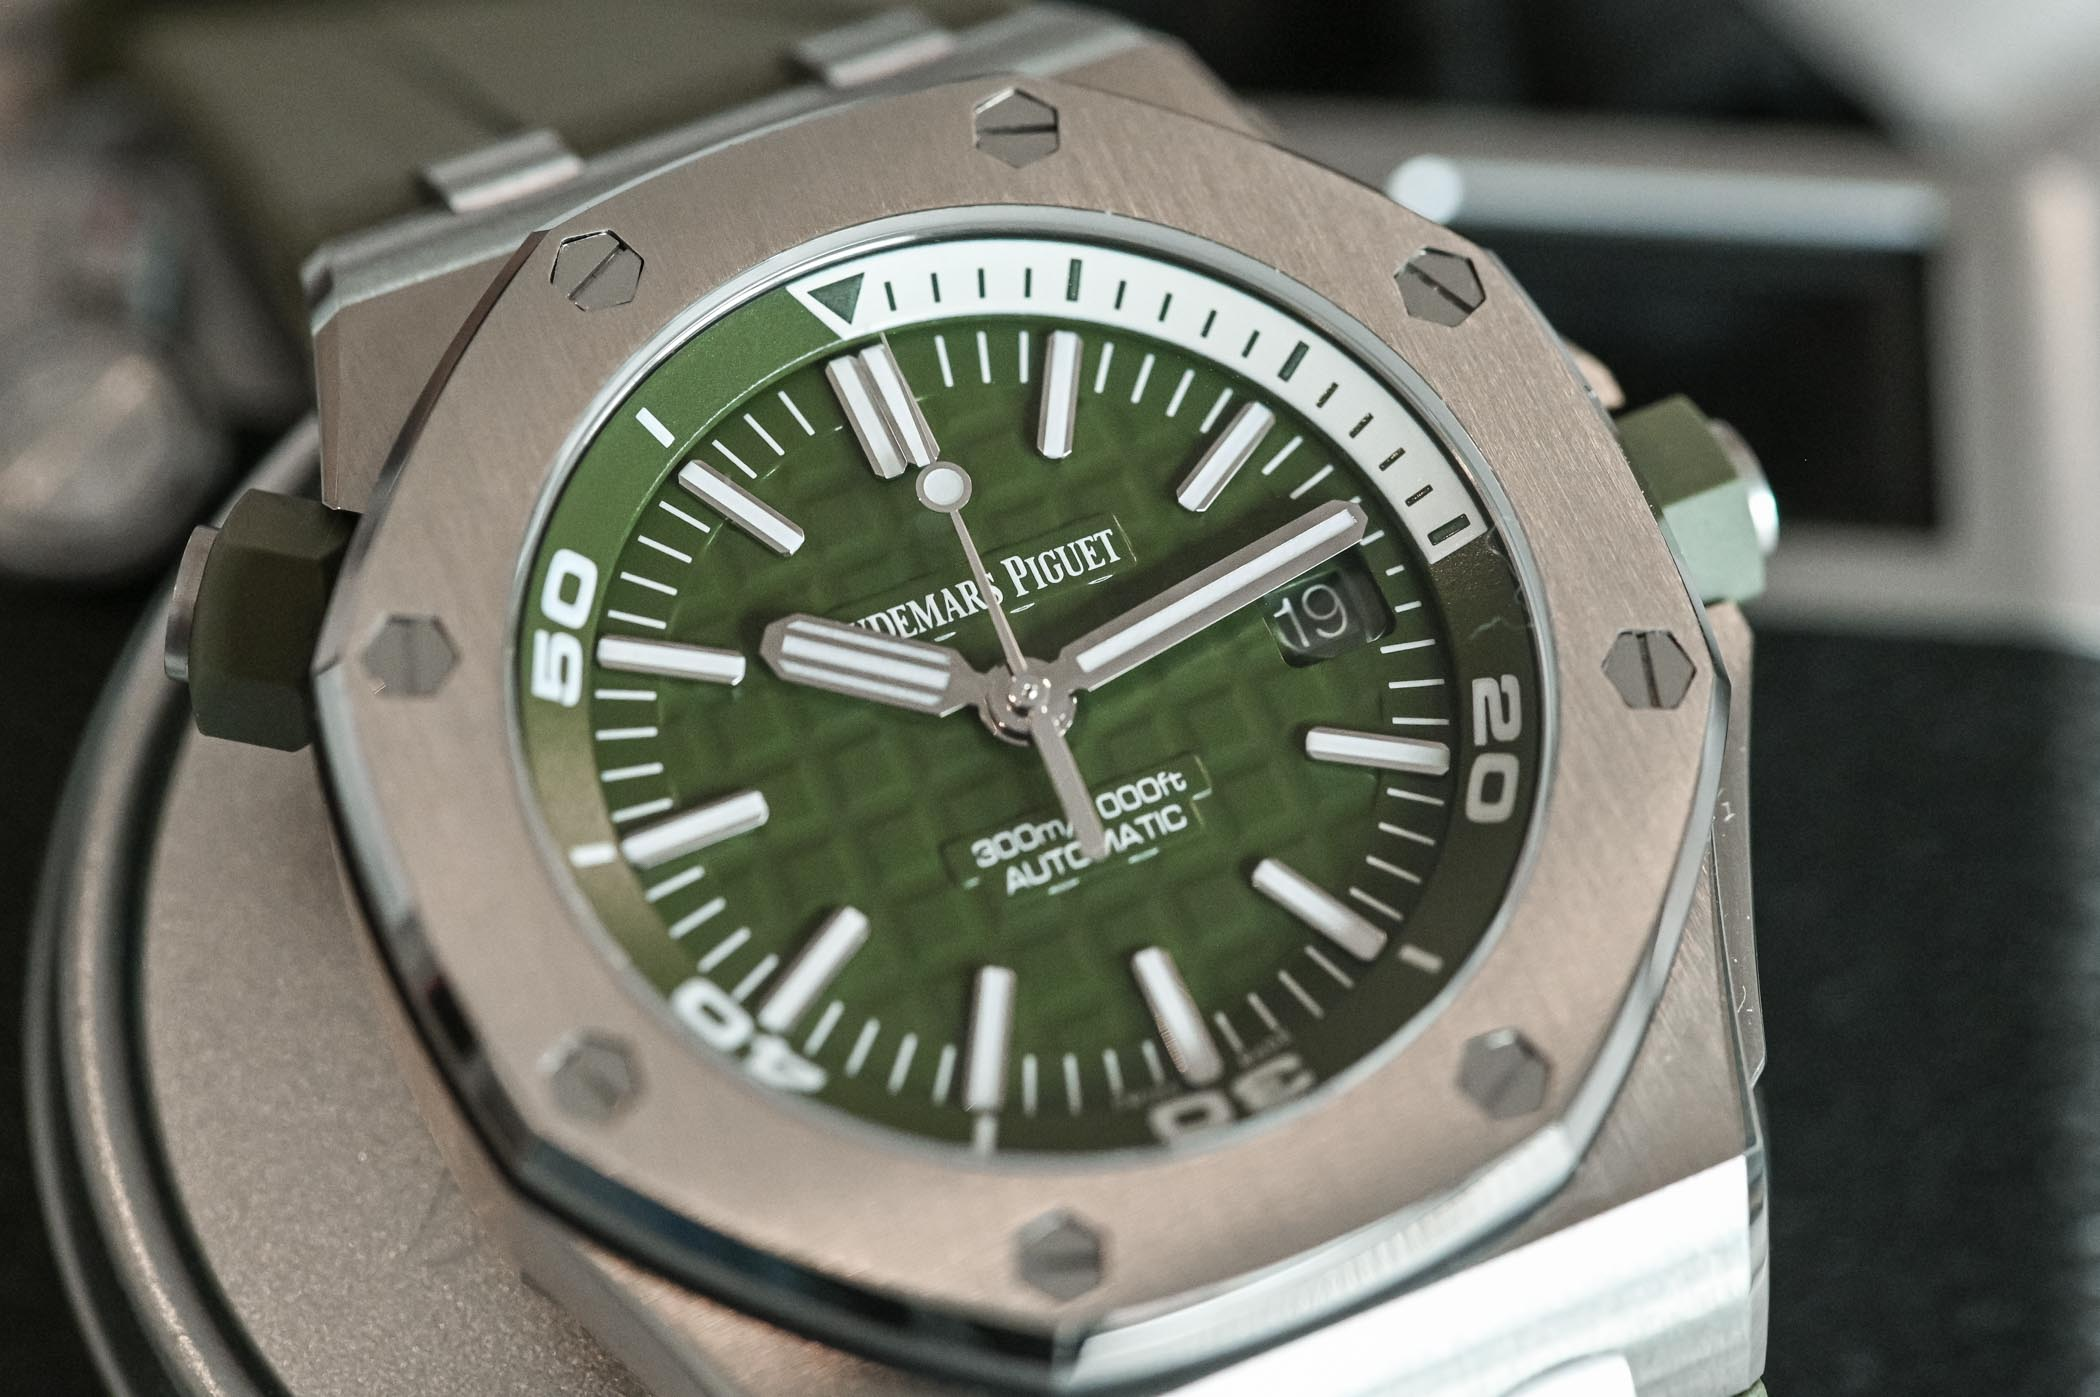 Audemars Piguet Royal Oak Offshore Diver Khaki Green - 15710ST.OO.A052CA.01 - Review - 5